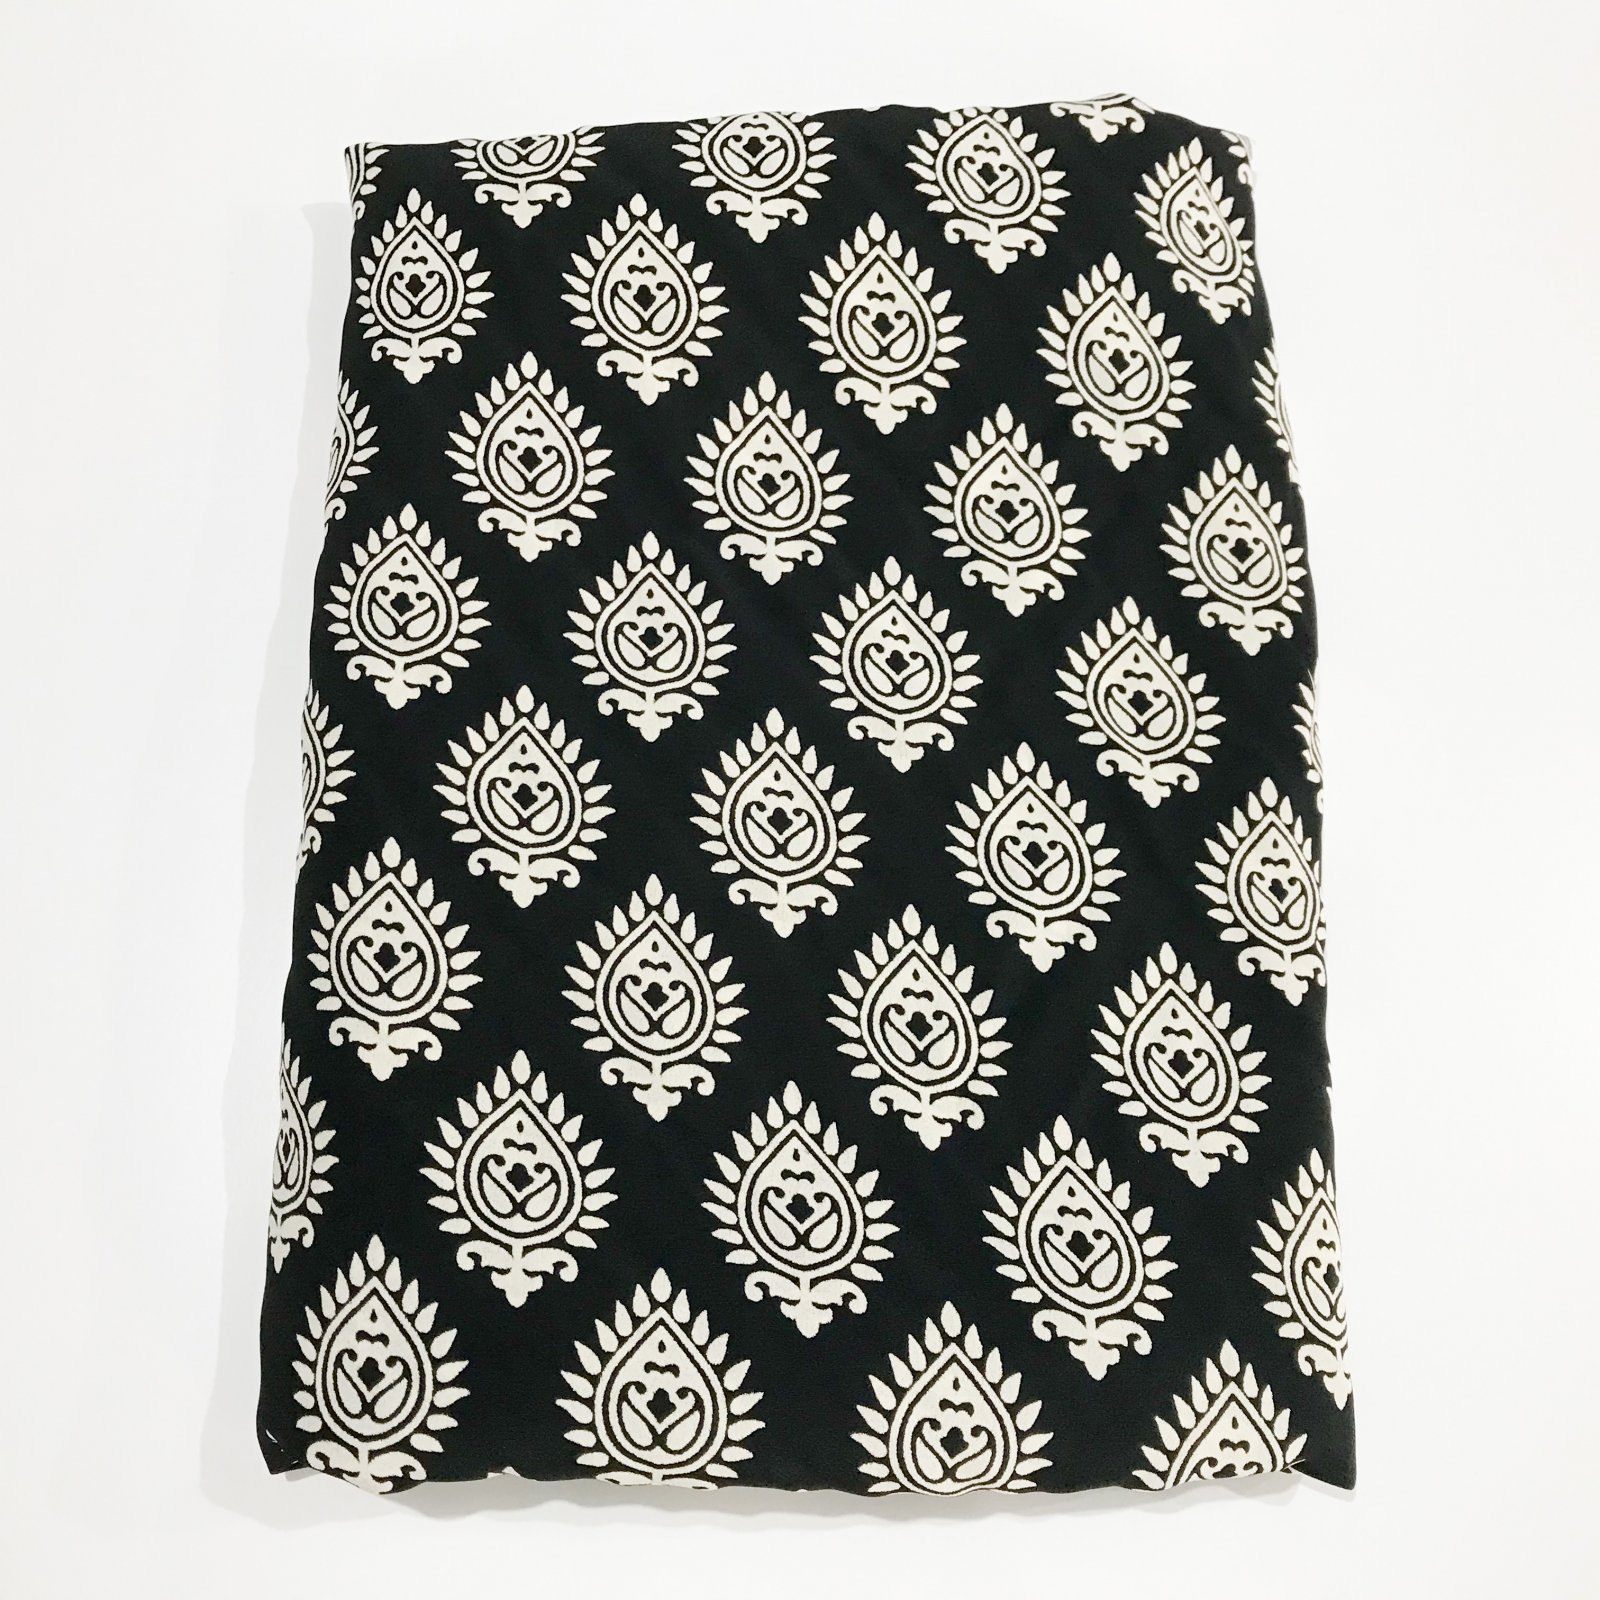 5 1/2 yards - Rayon Crepe - Black Medallions